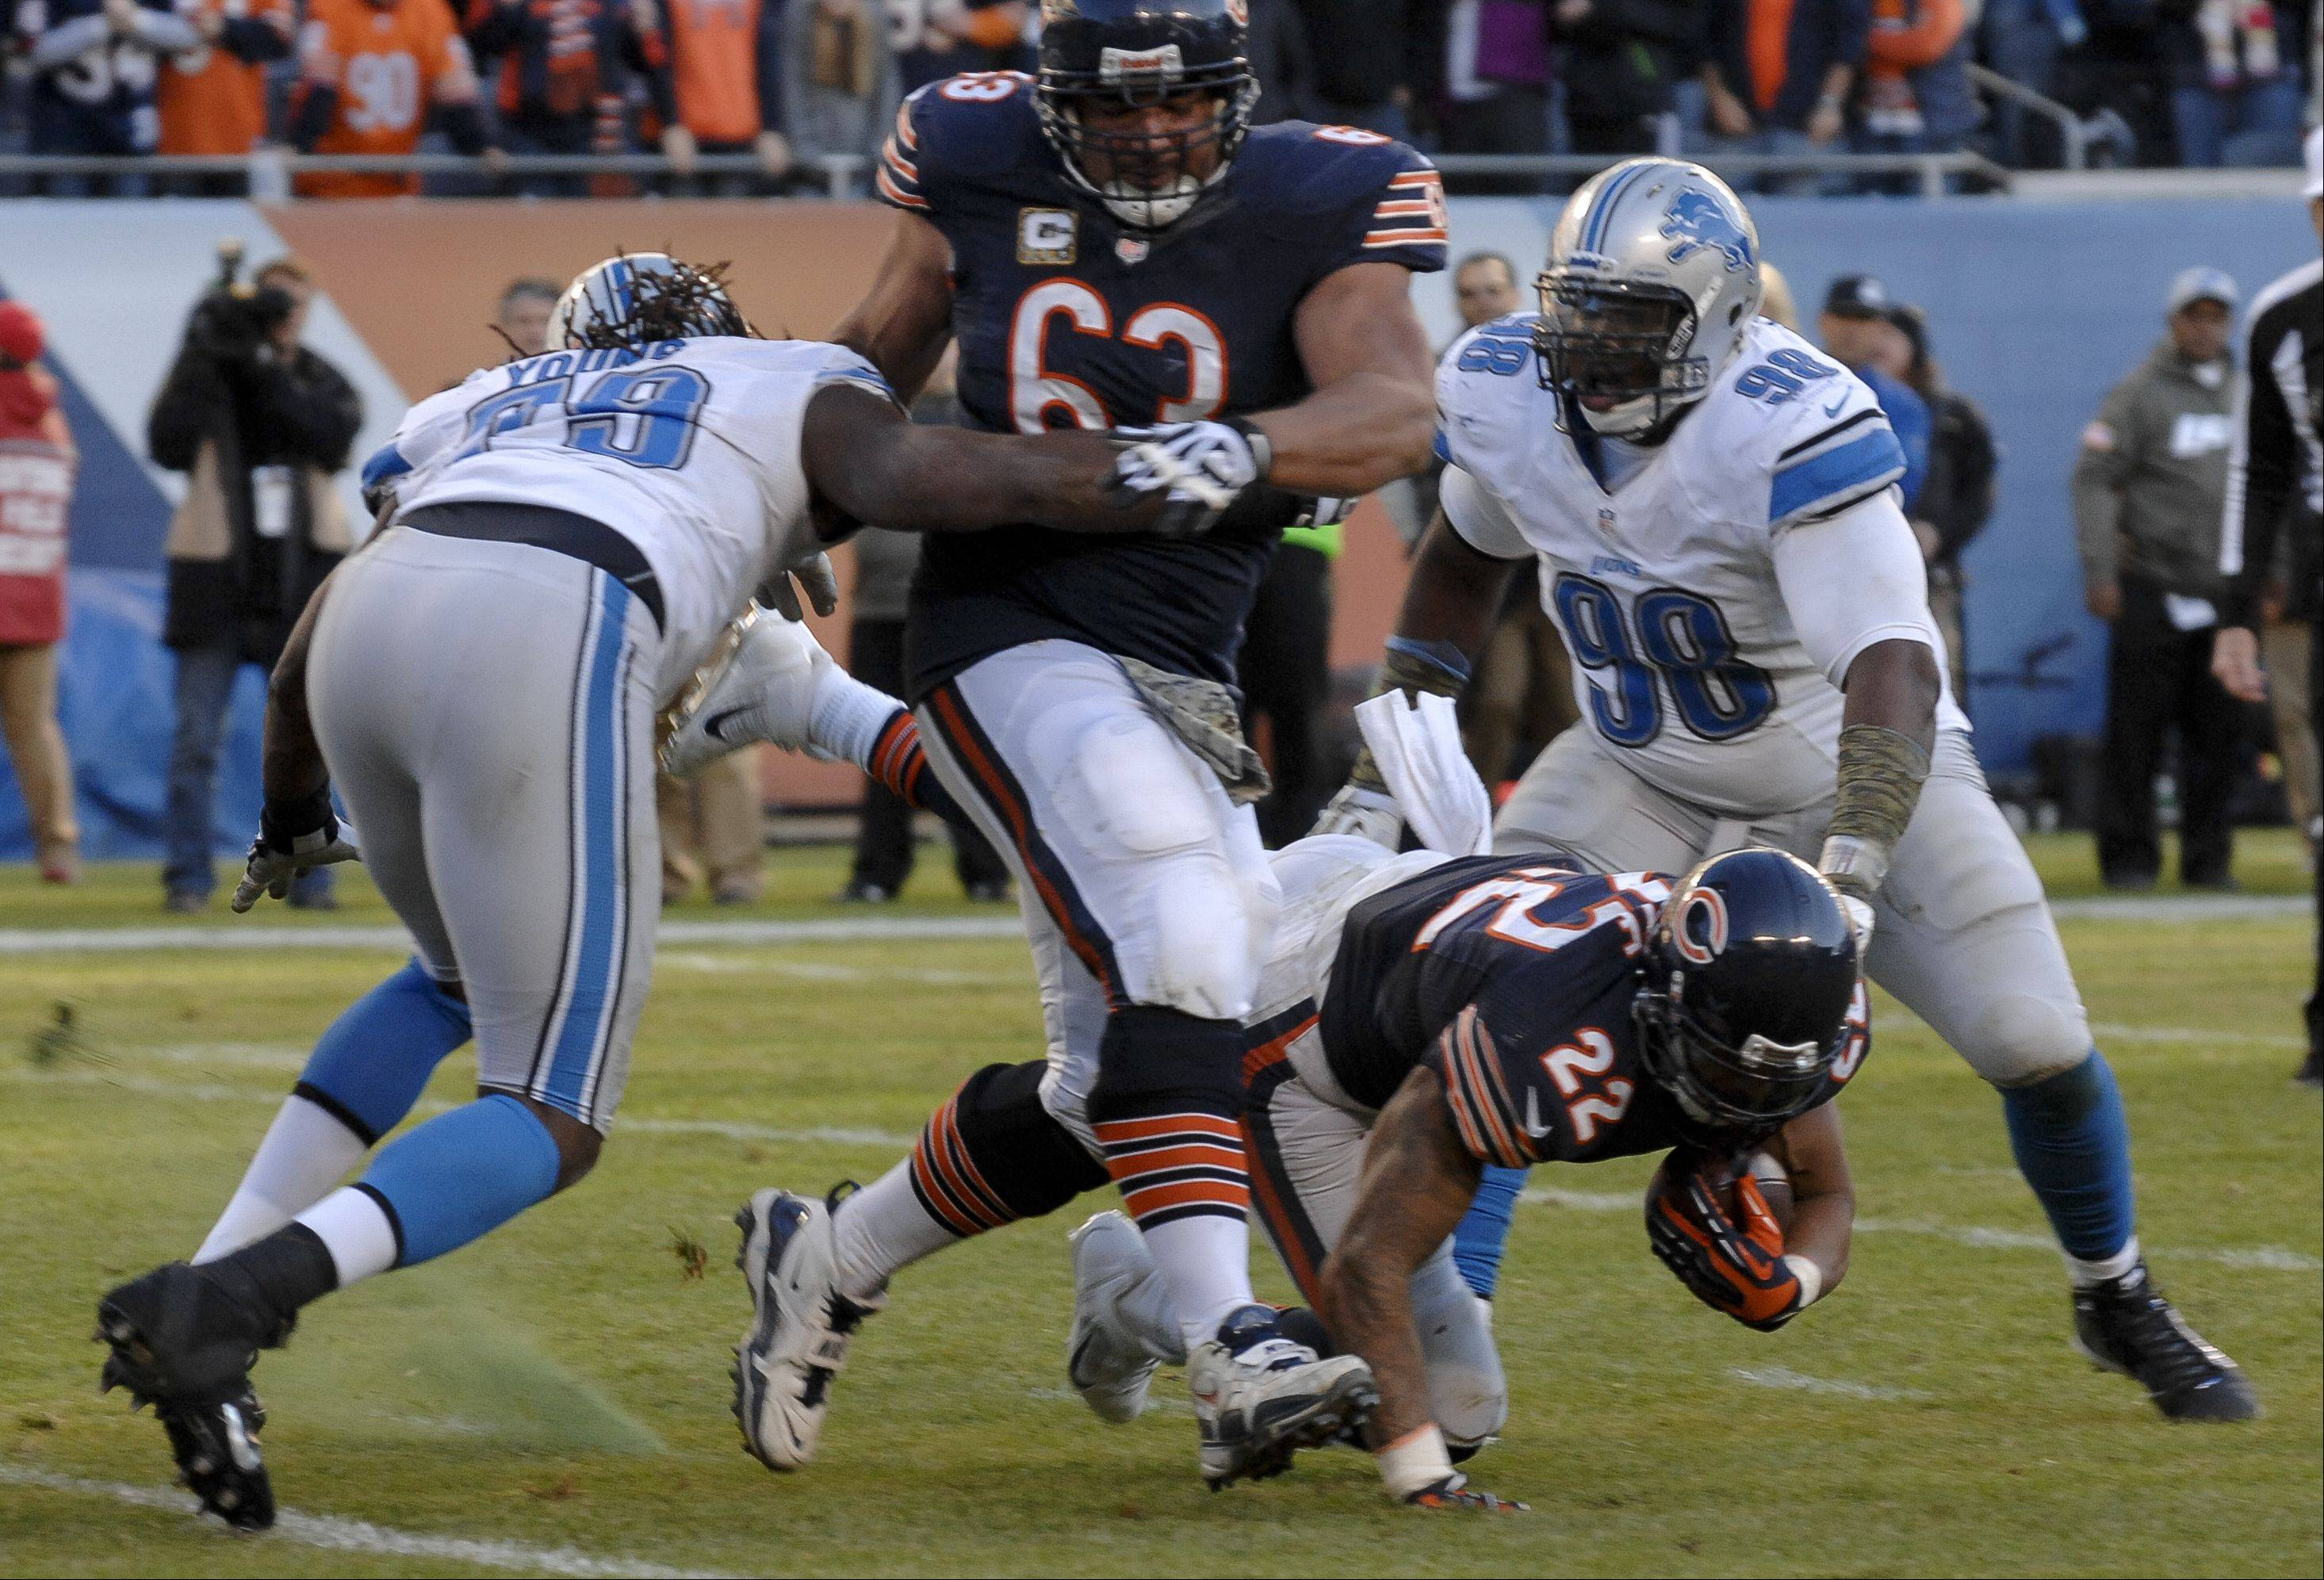 Chicago Bears running back Matt Forte fails to make the touchdown conversion late in the 4th quarter of the Bears 21-19 loss to the Detroit Lions.